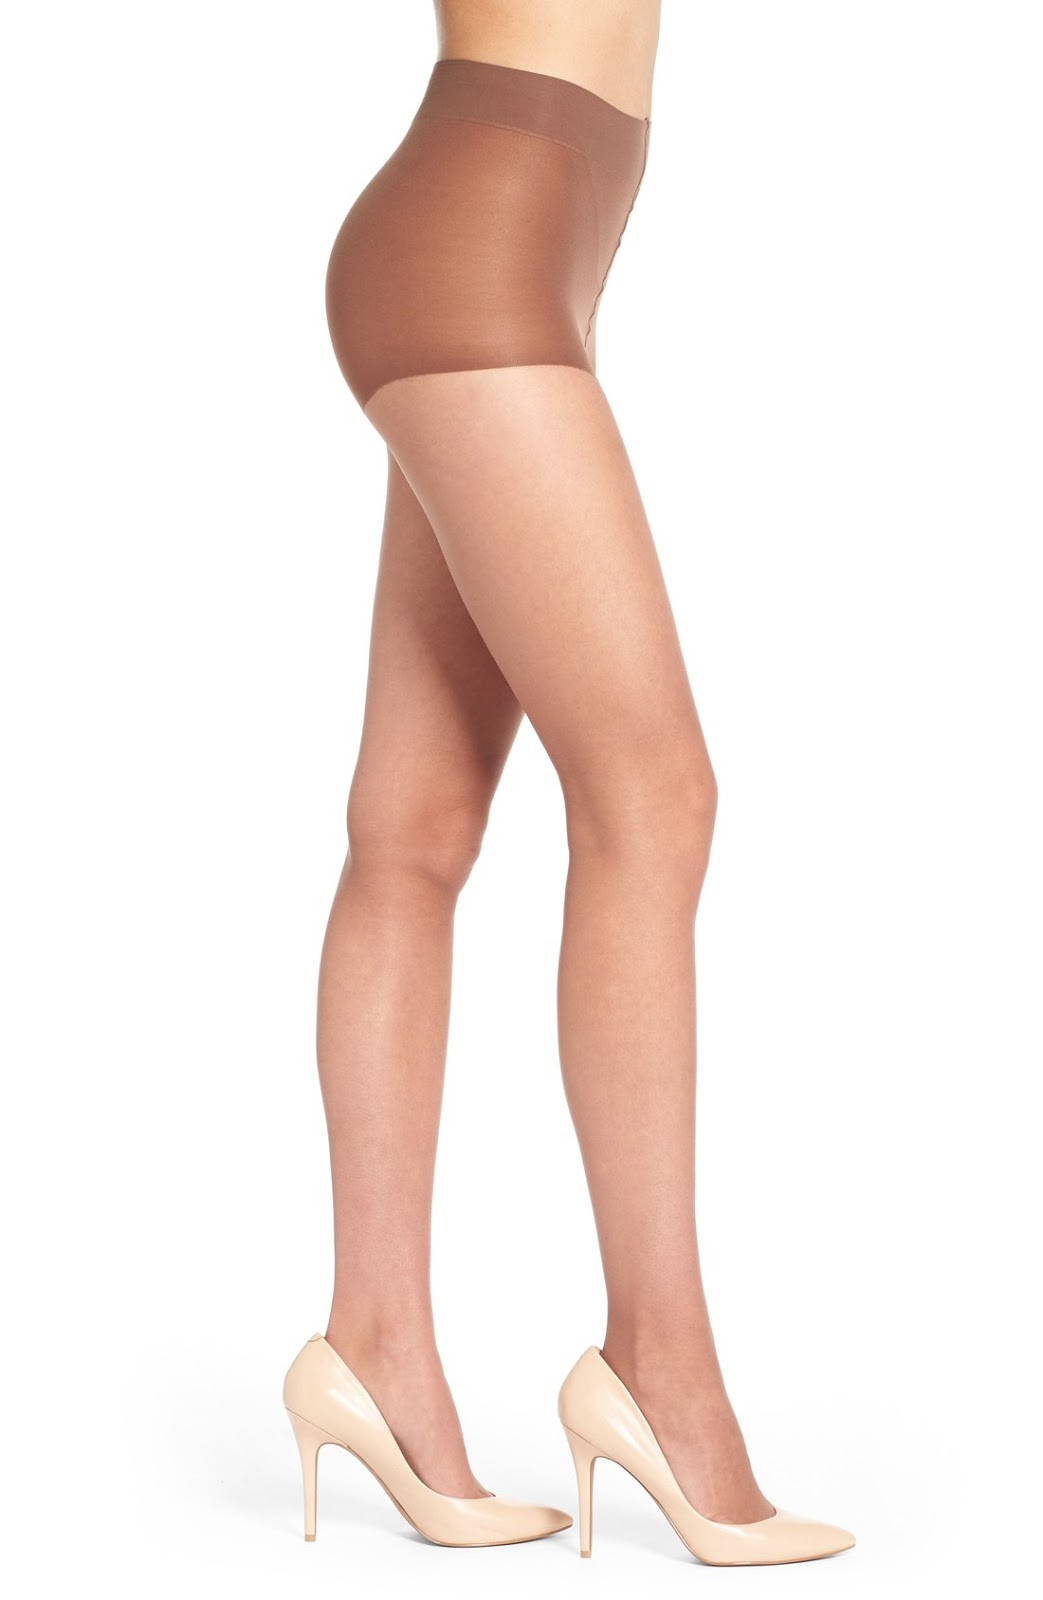 Lets talk about nude tights - are nude tights good or bad?